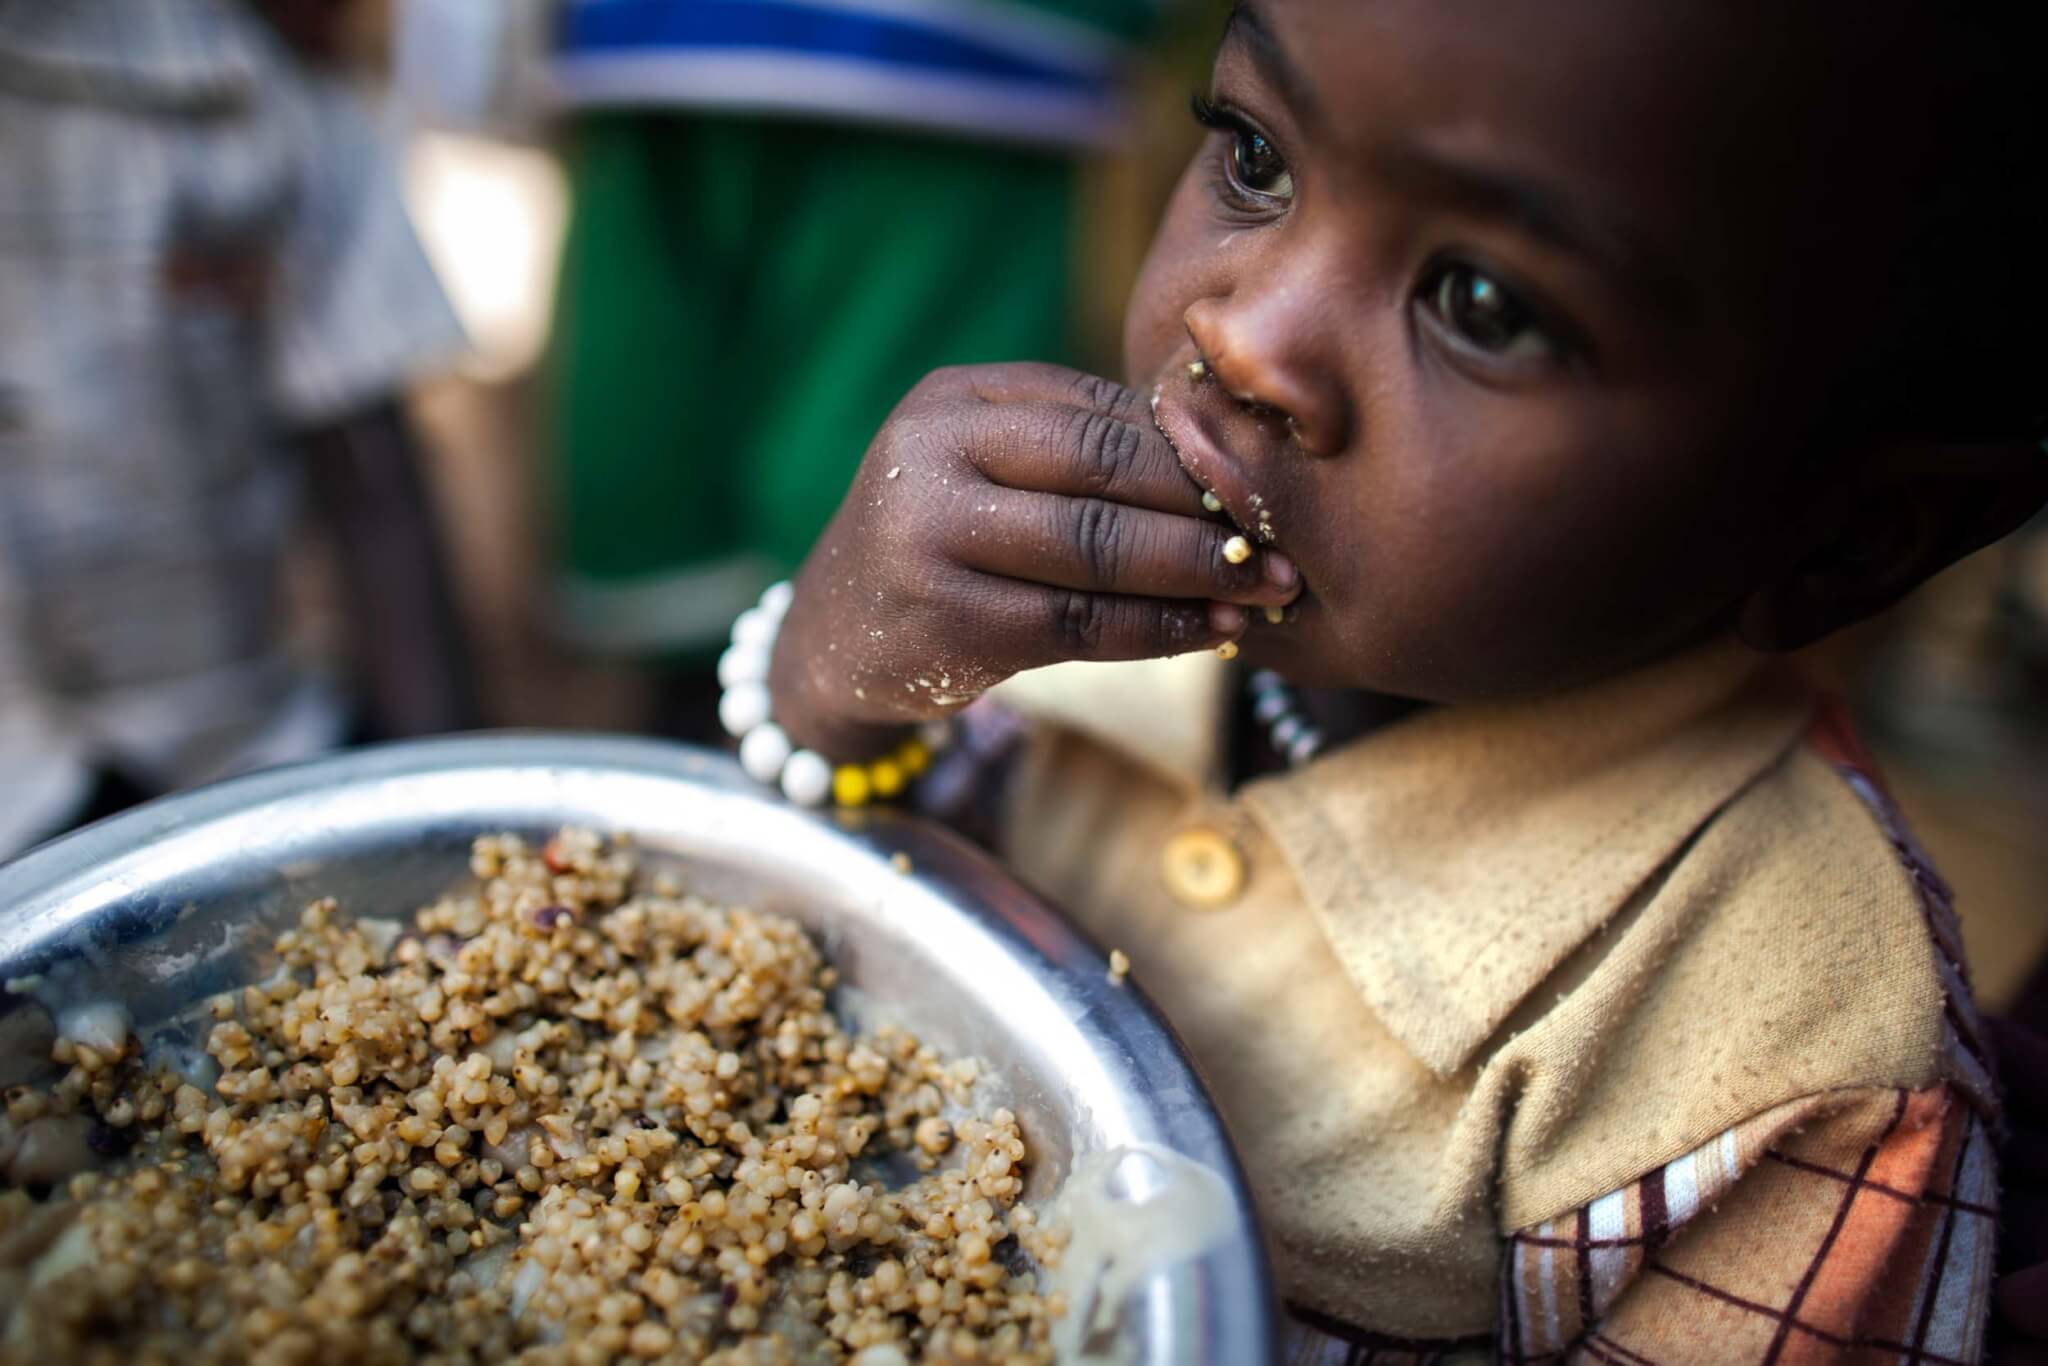 A child eats lentils in a food distribution centre, Rwanda